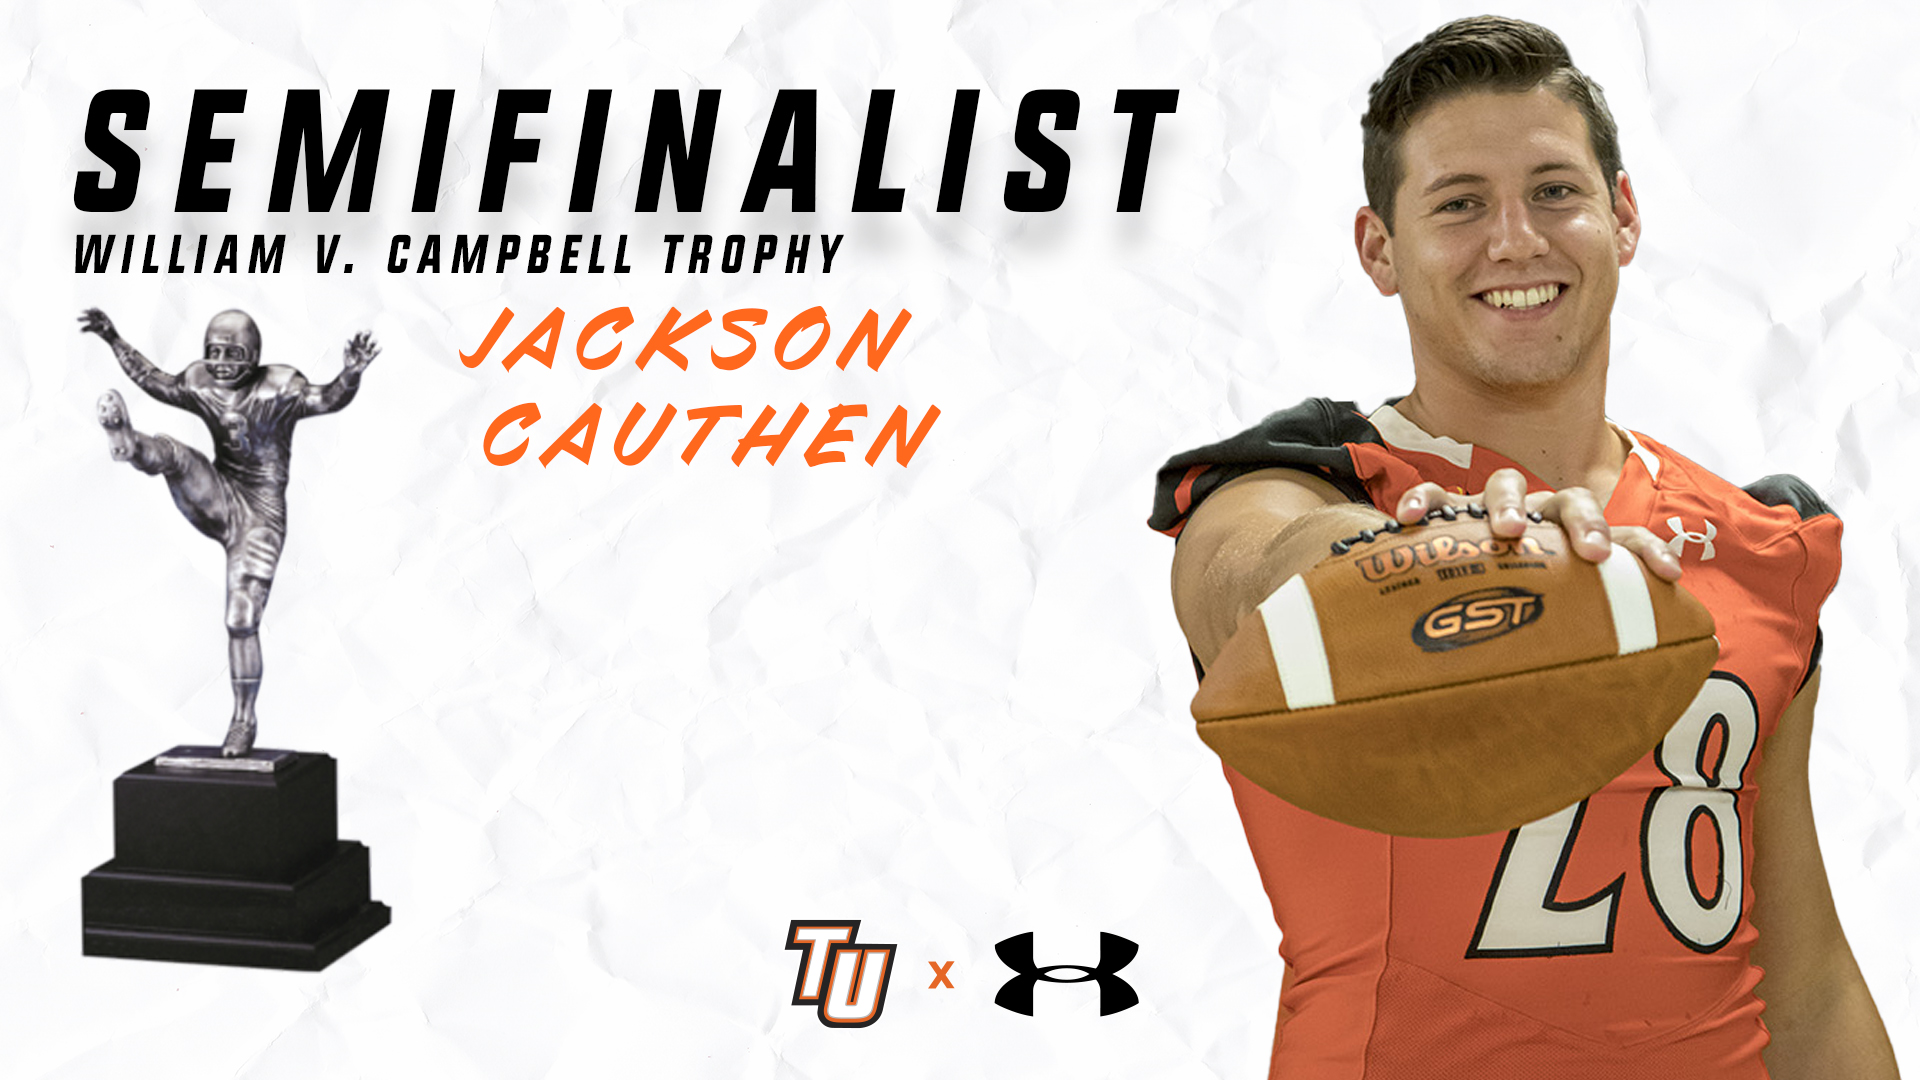 Cauthen named semifinalist for Campbell Trophy